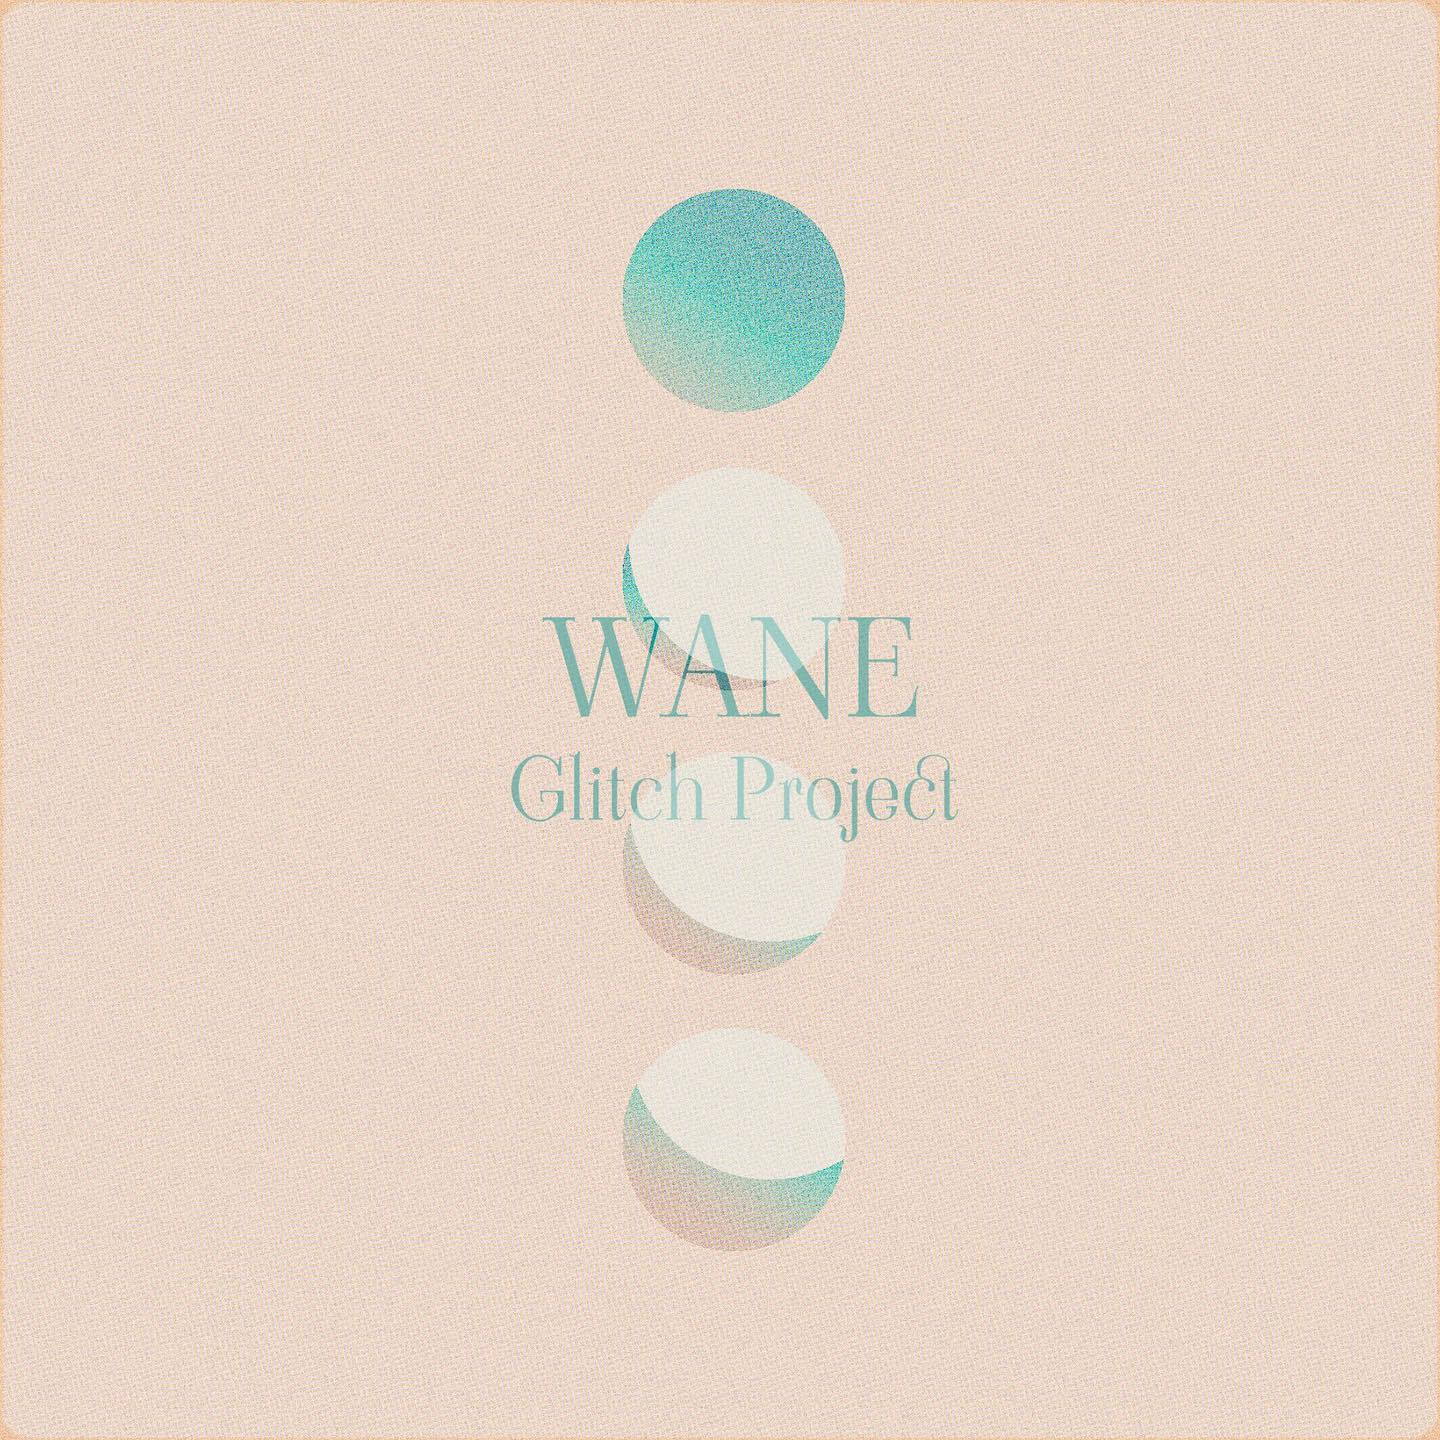 """Read more about the article Speaking With Glitch Project About Their Latest Single Entitled """"Wane"""""""